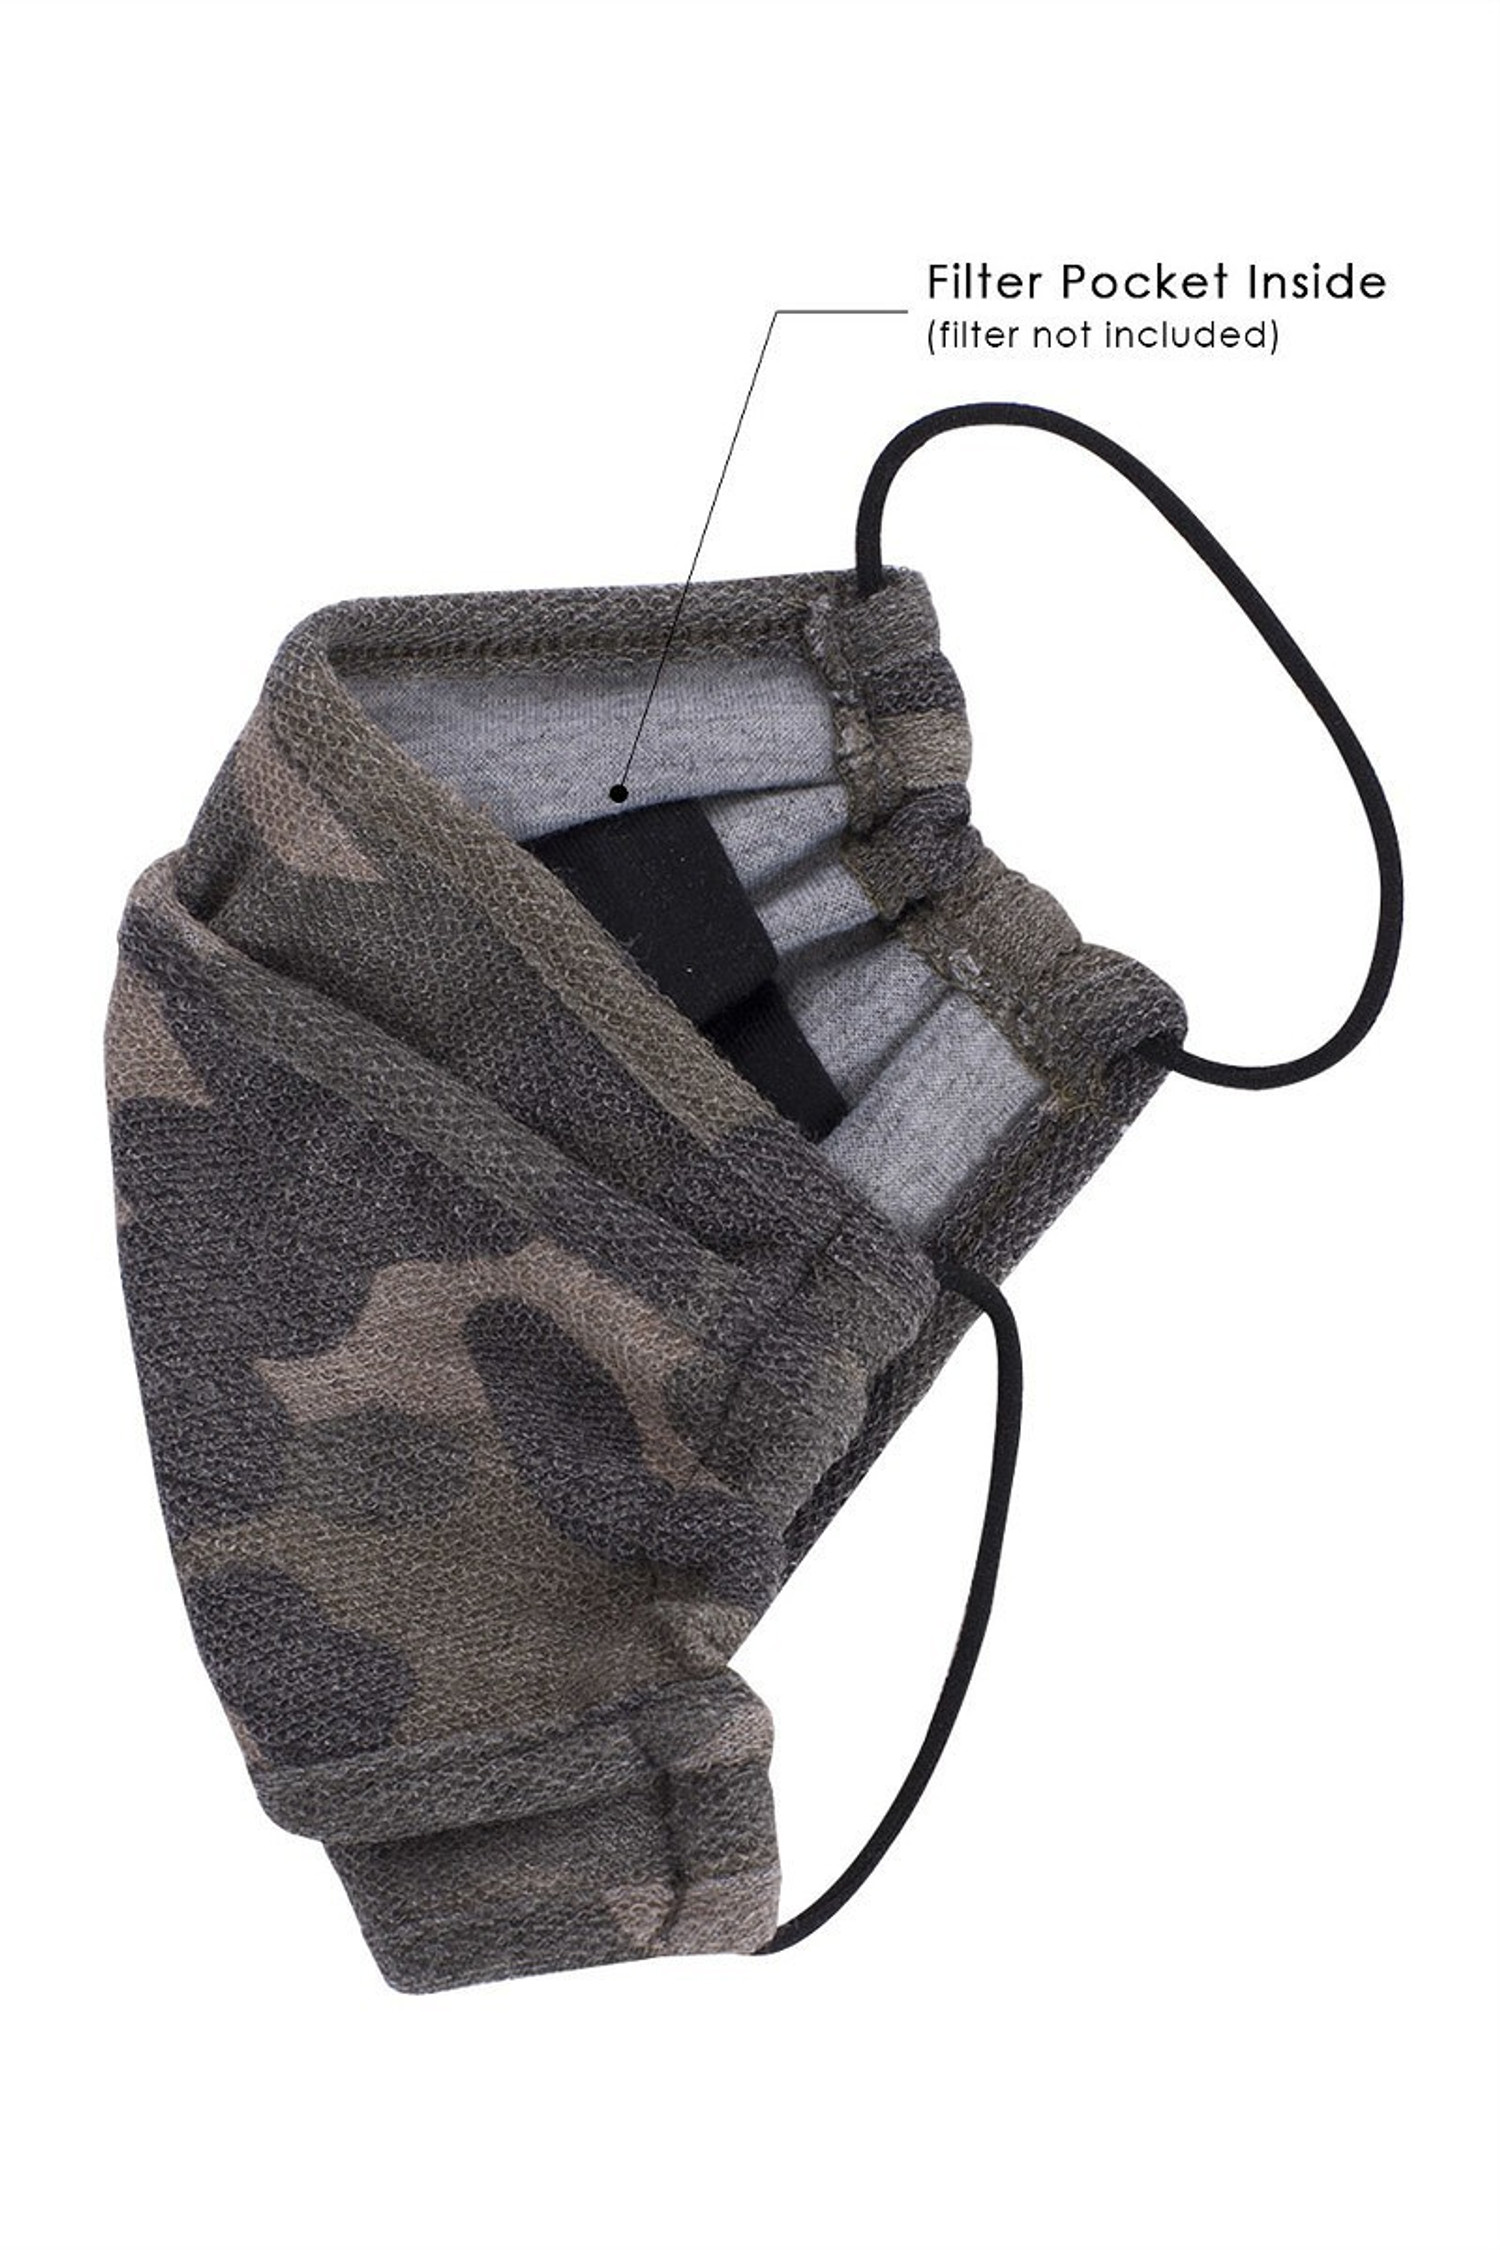 Tri-Fold Rustic Camouflage Face Mask - Made in USA